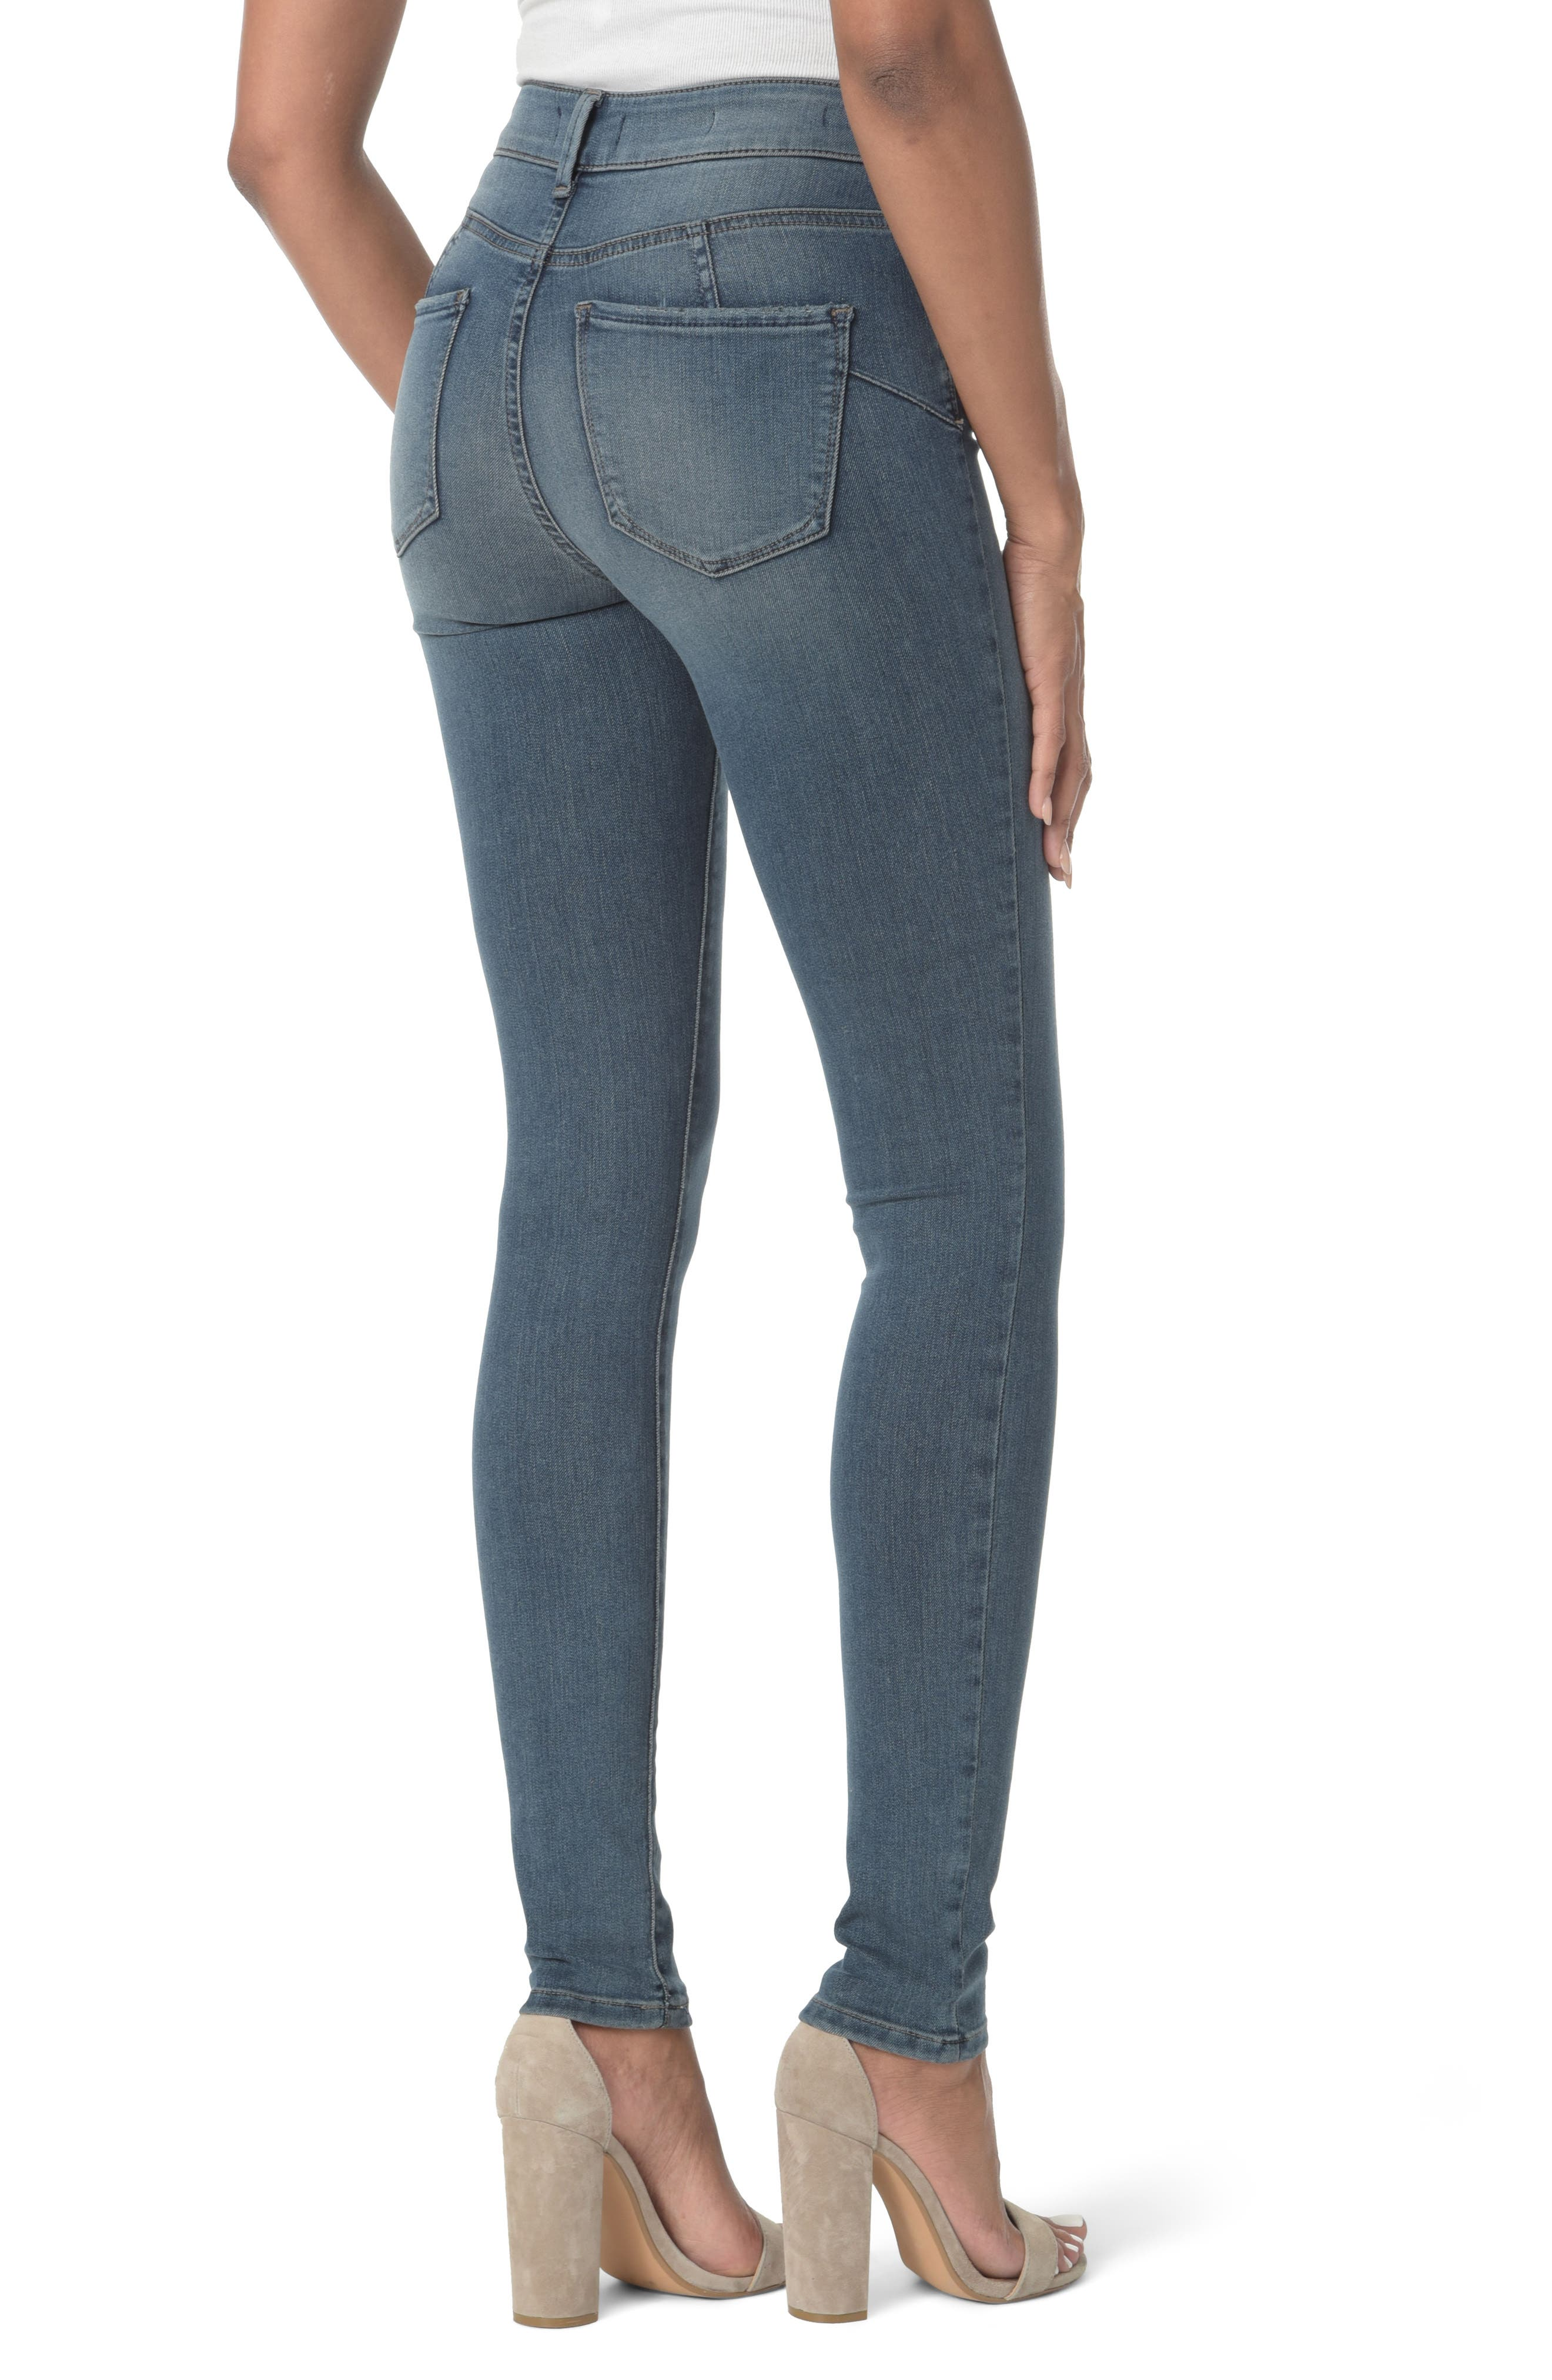 Alina Uplift Stretch Skinny Jeans,                             Alternate thumbnail 2, color,                             403